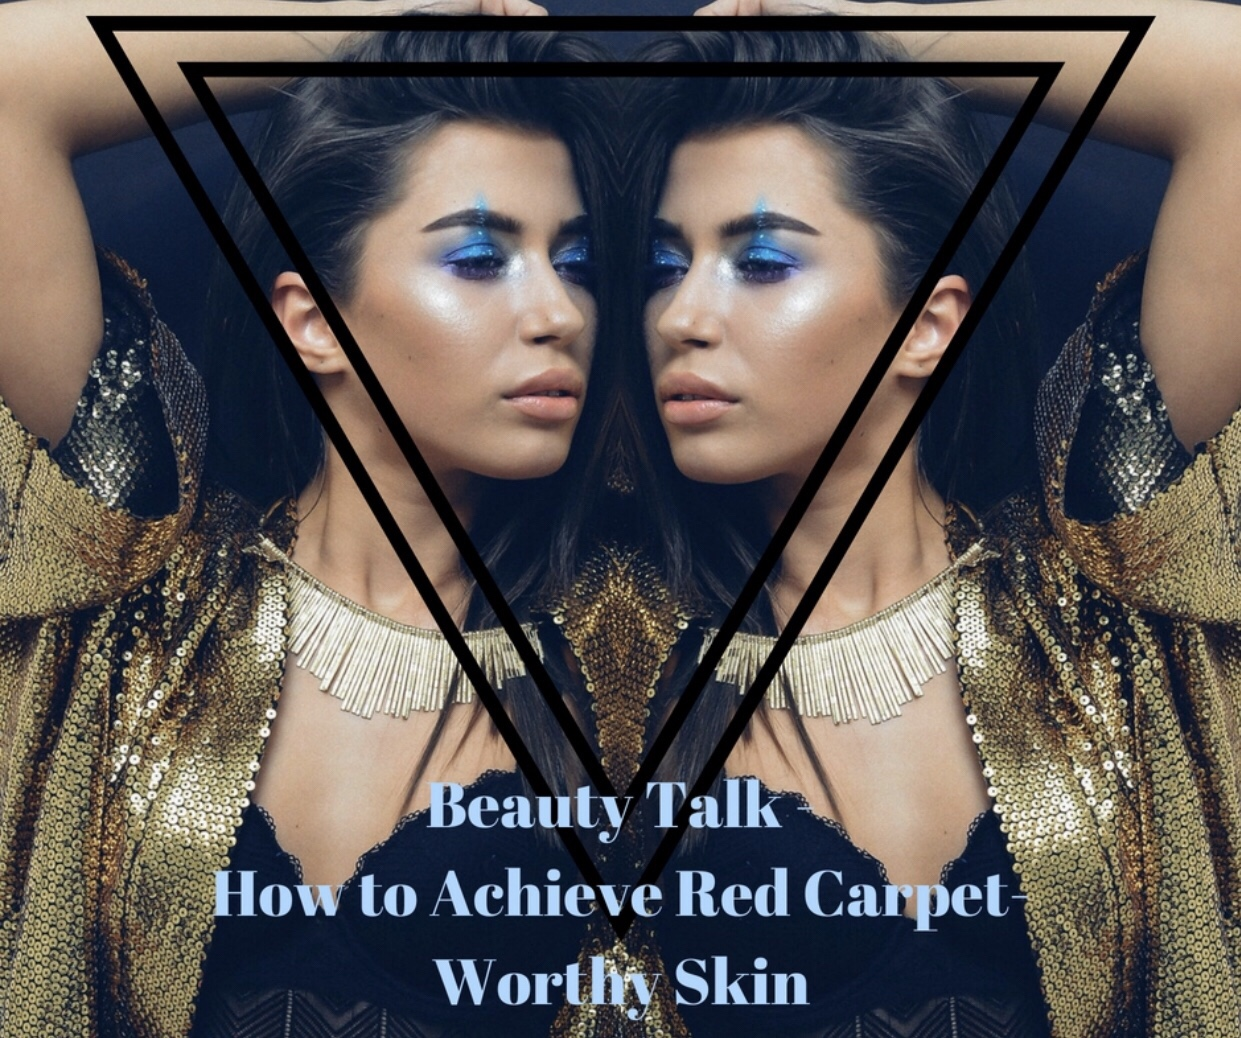 Beauty Talk – How to Achieve Red Carpet-Worthy Skin – Guest blog article by Amy Mia Goldsmith